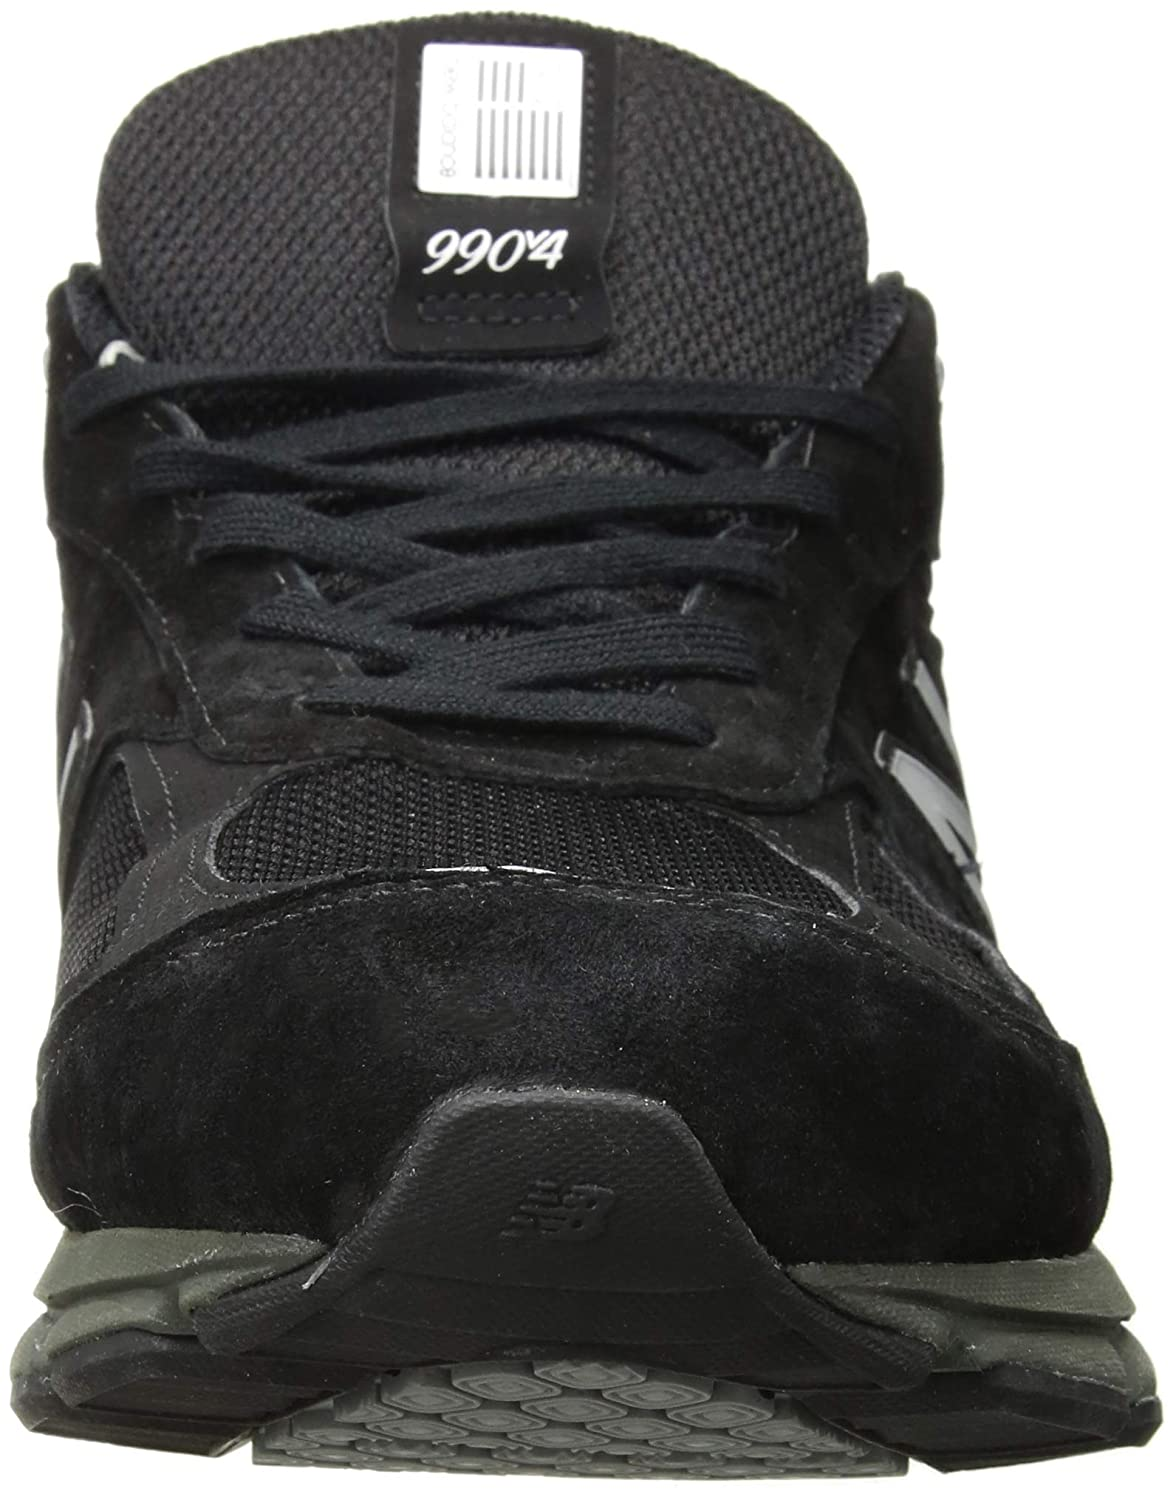 New-Balance-990-990v4-Classicc-Retro-Fashion-Sneaker-Made-in-USA thumbnail 24